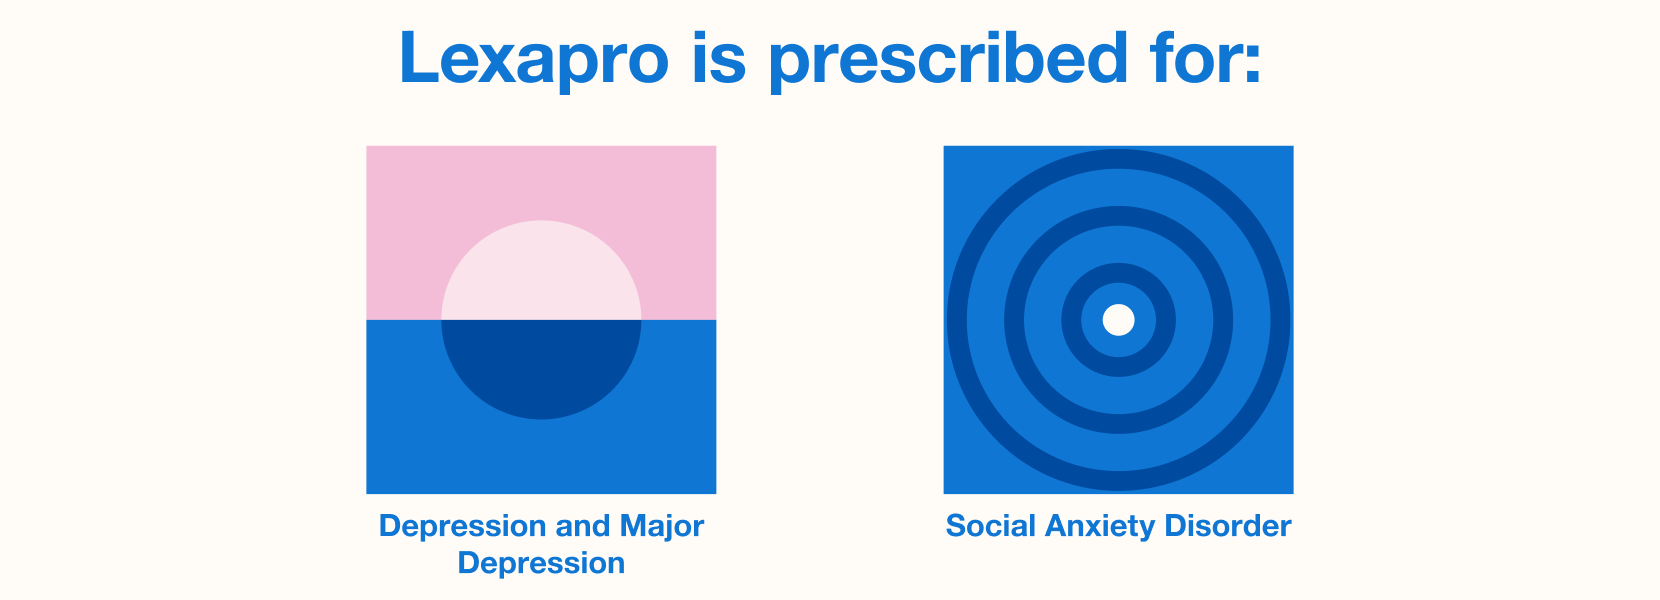 What Lexapro is prescribed for